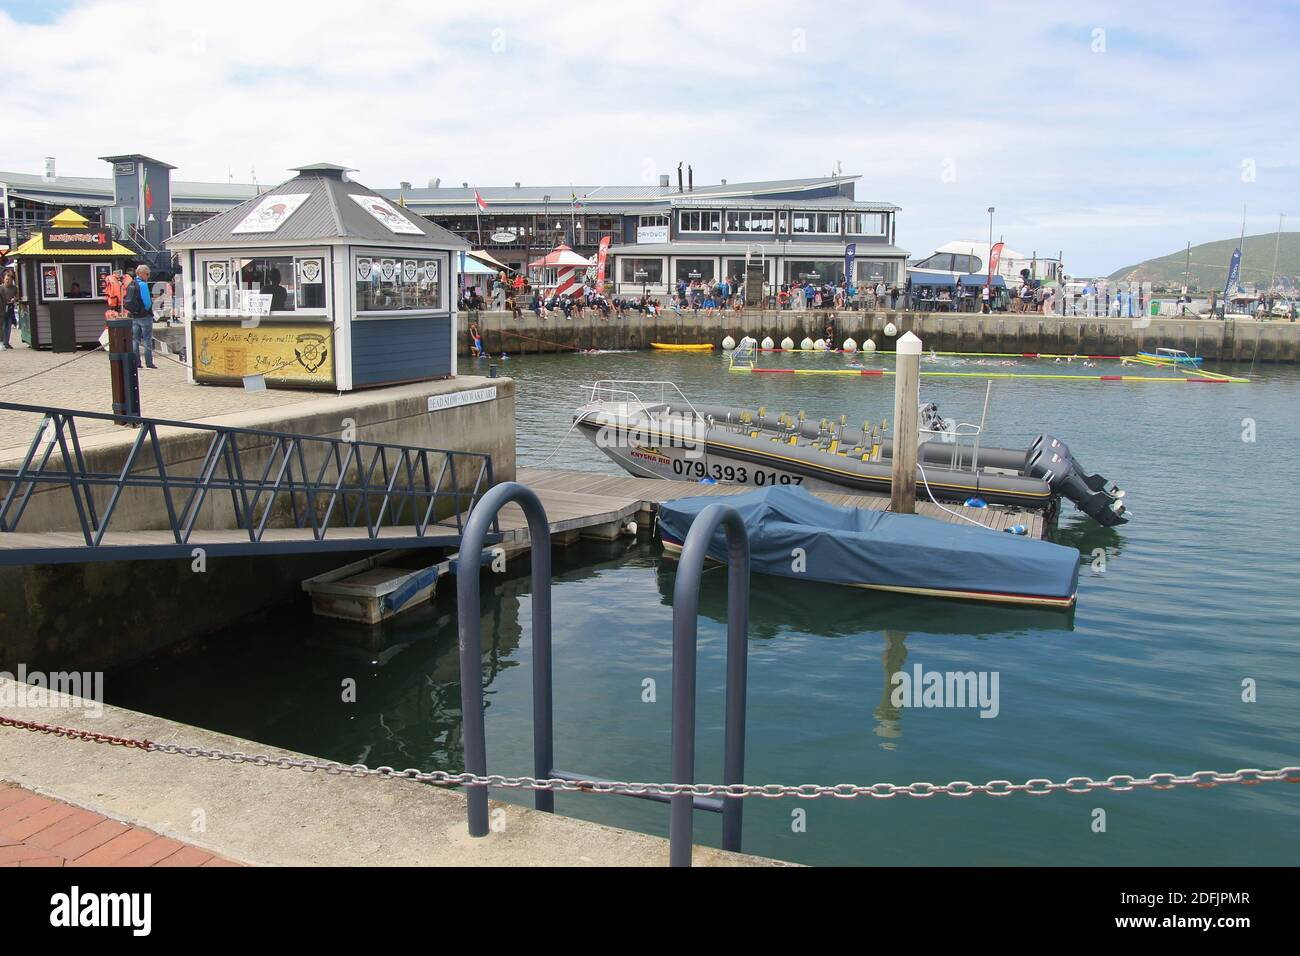 Knysna, South Africa: The Knynsa waterfront with marina, restaurants and shops, by the Knysna lagoon. Garden Route, South Africa, Africa. Stock Photo